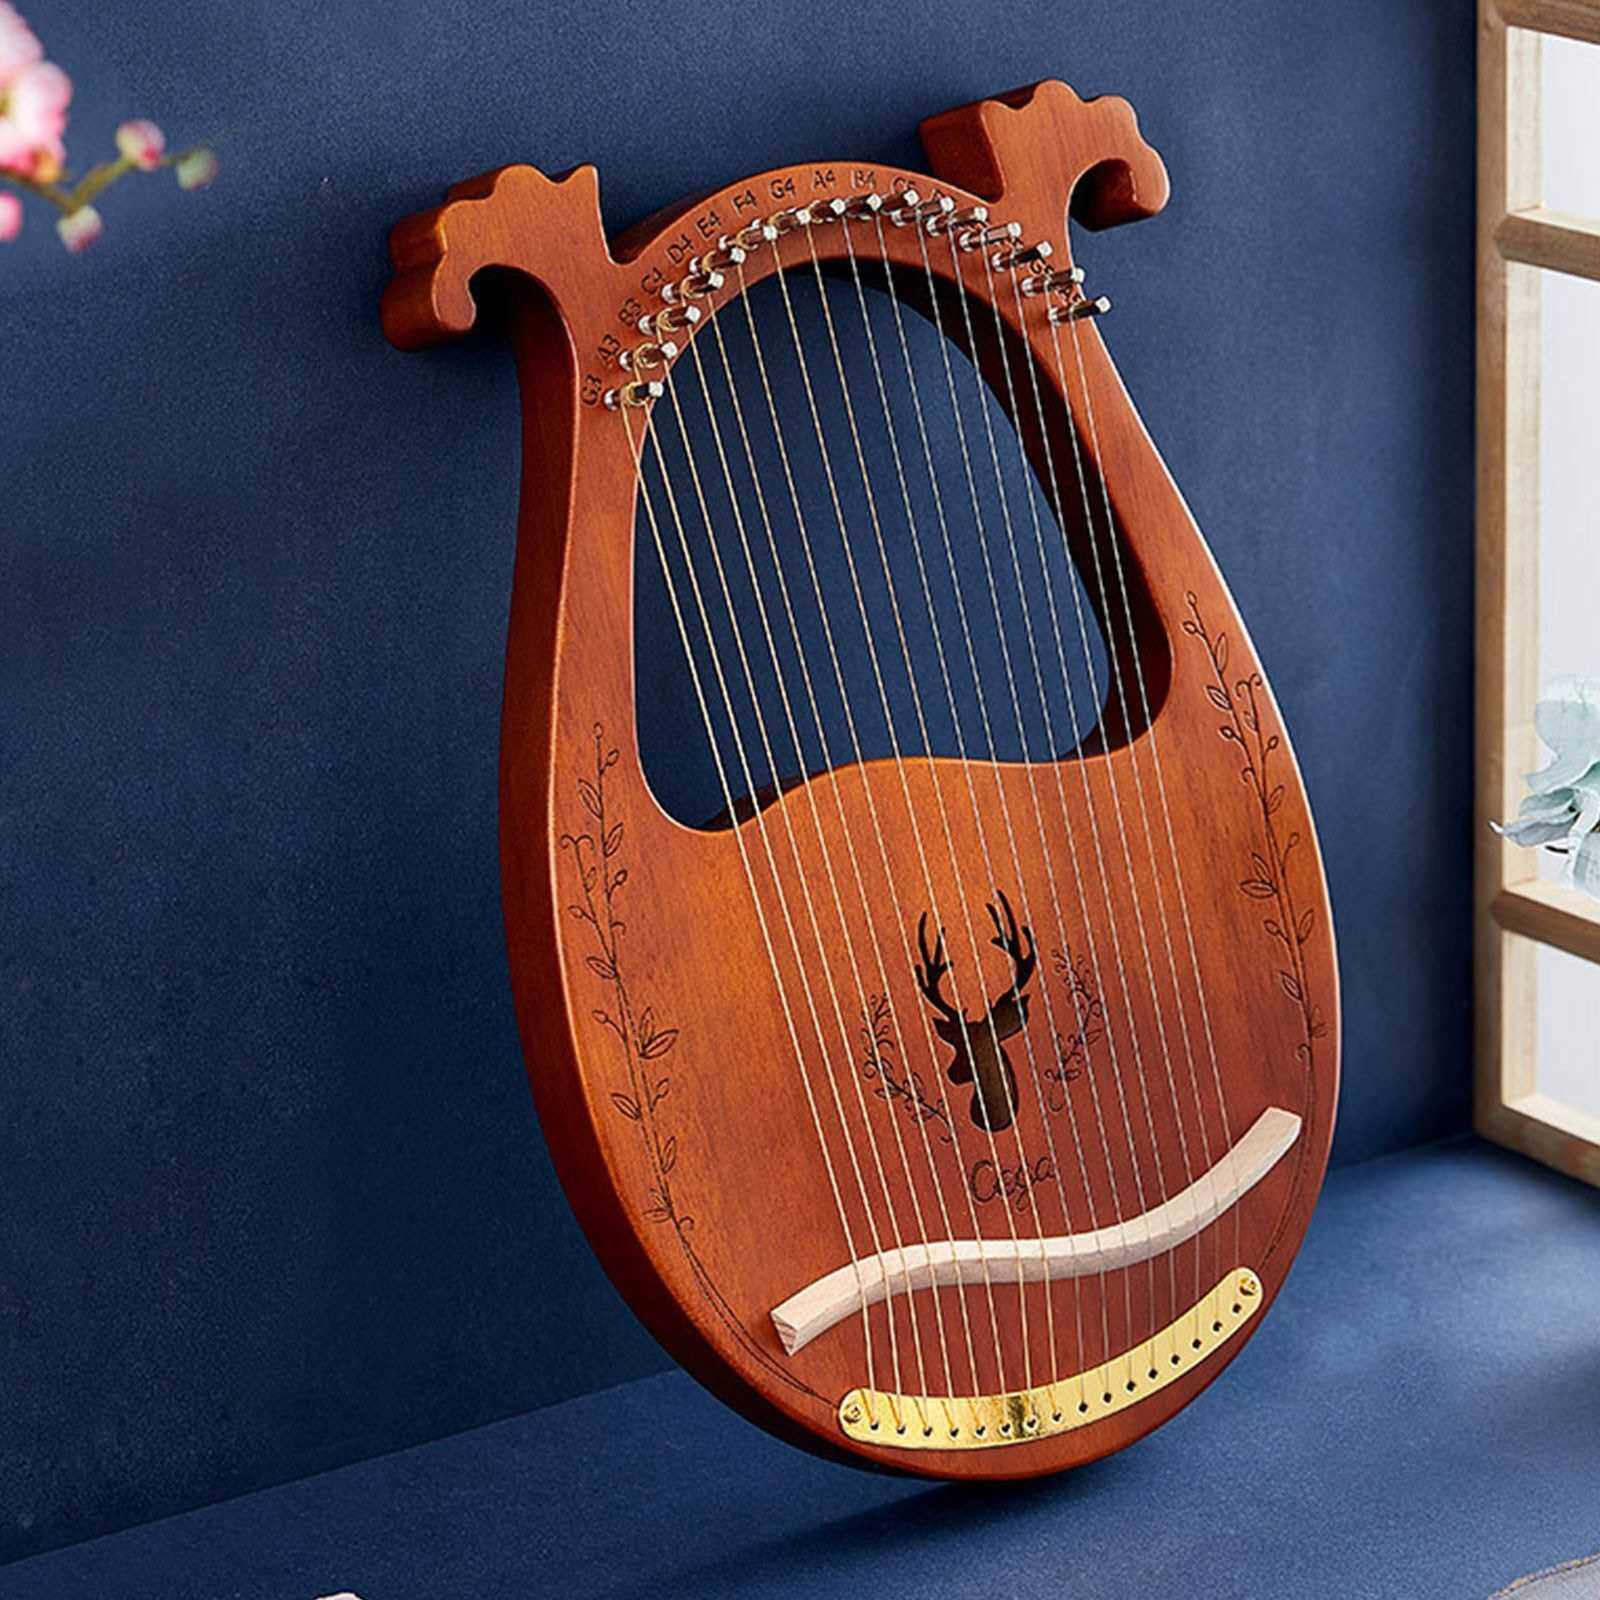 16-String Wooden Lyre Harp Resonance Box String Instrument with Tuning Wrench 3pcs Picks (Coffee)